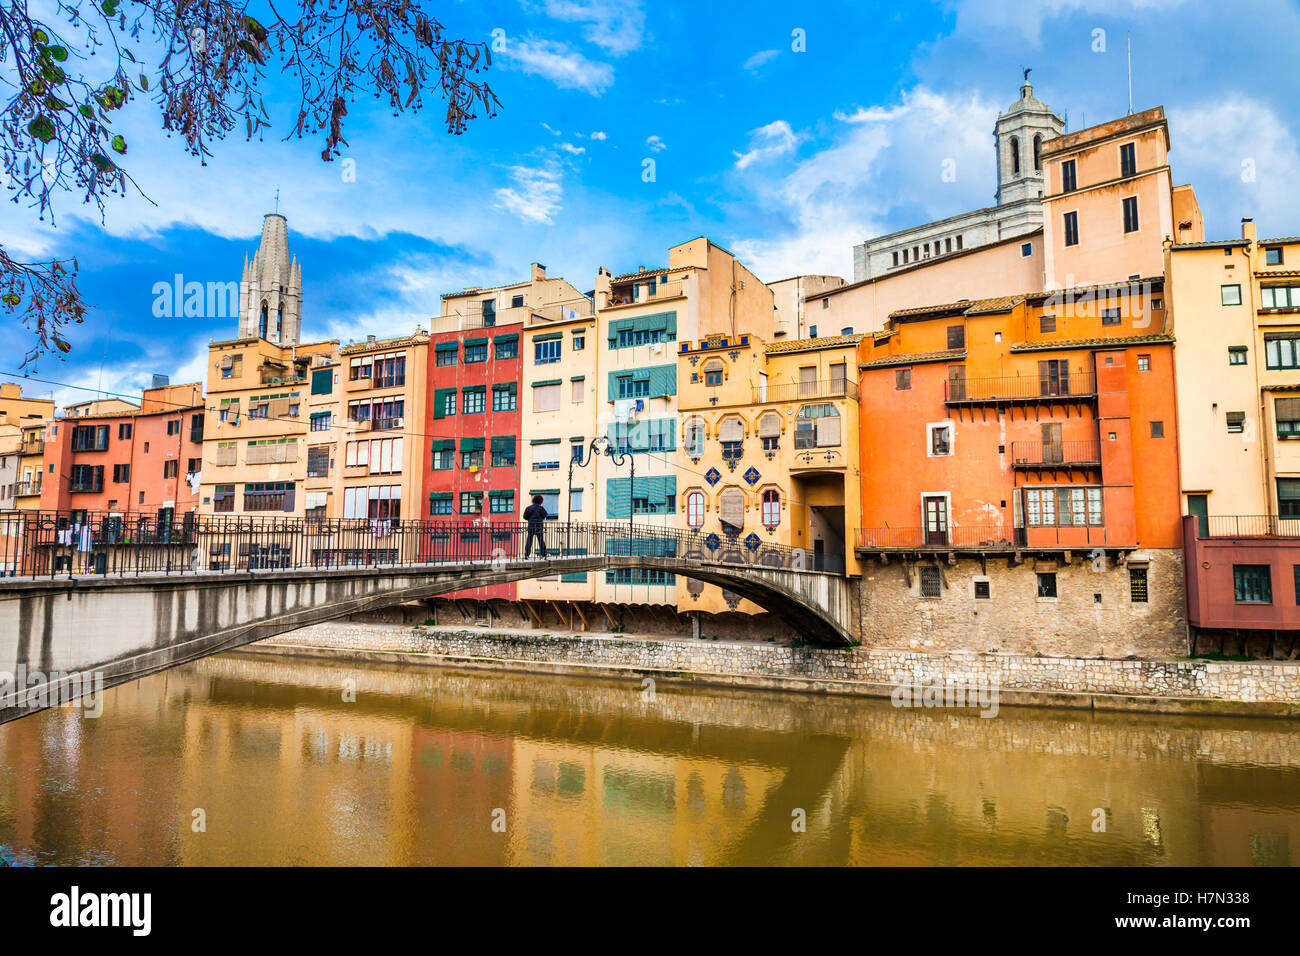 Girona - beautiful colorful town in Catalonia, Spain Stock Photo